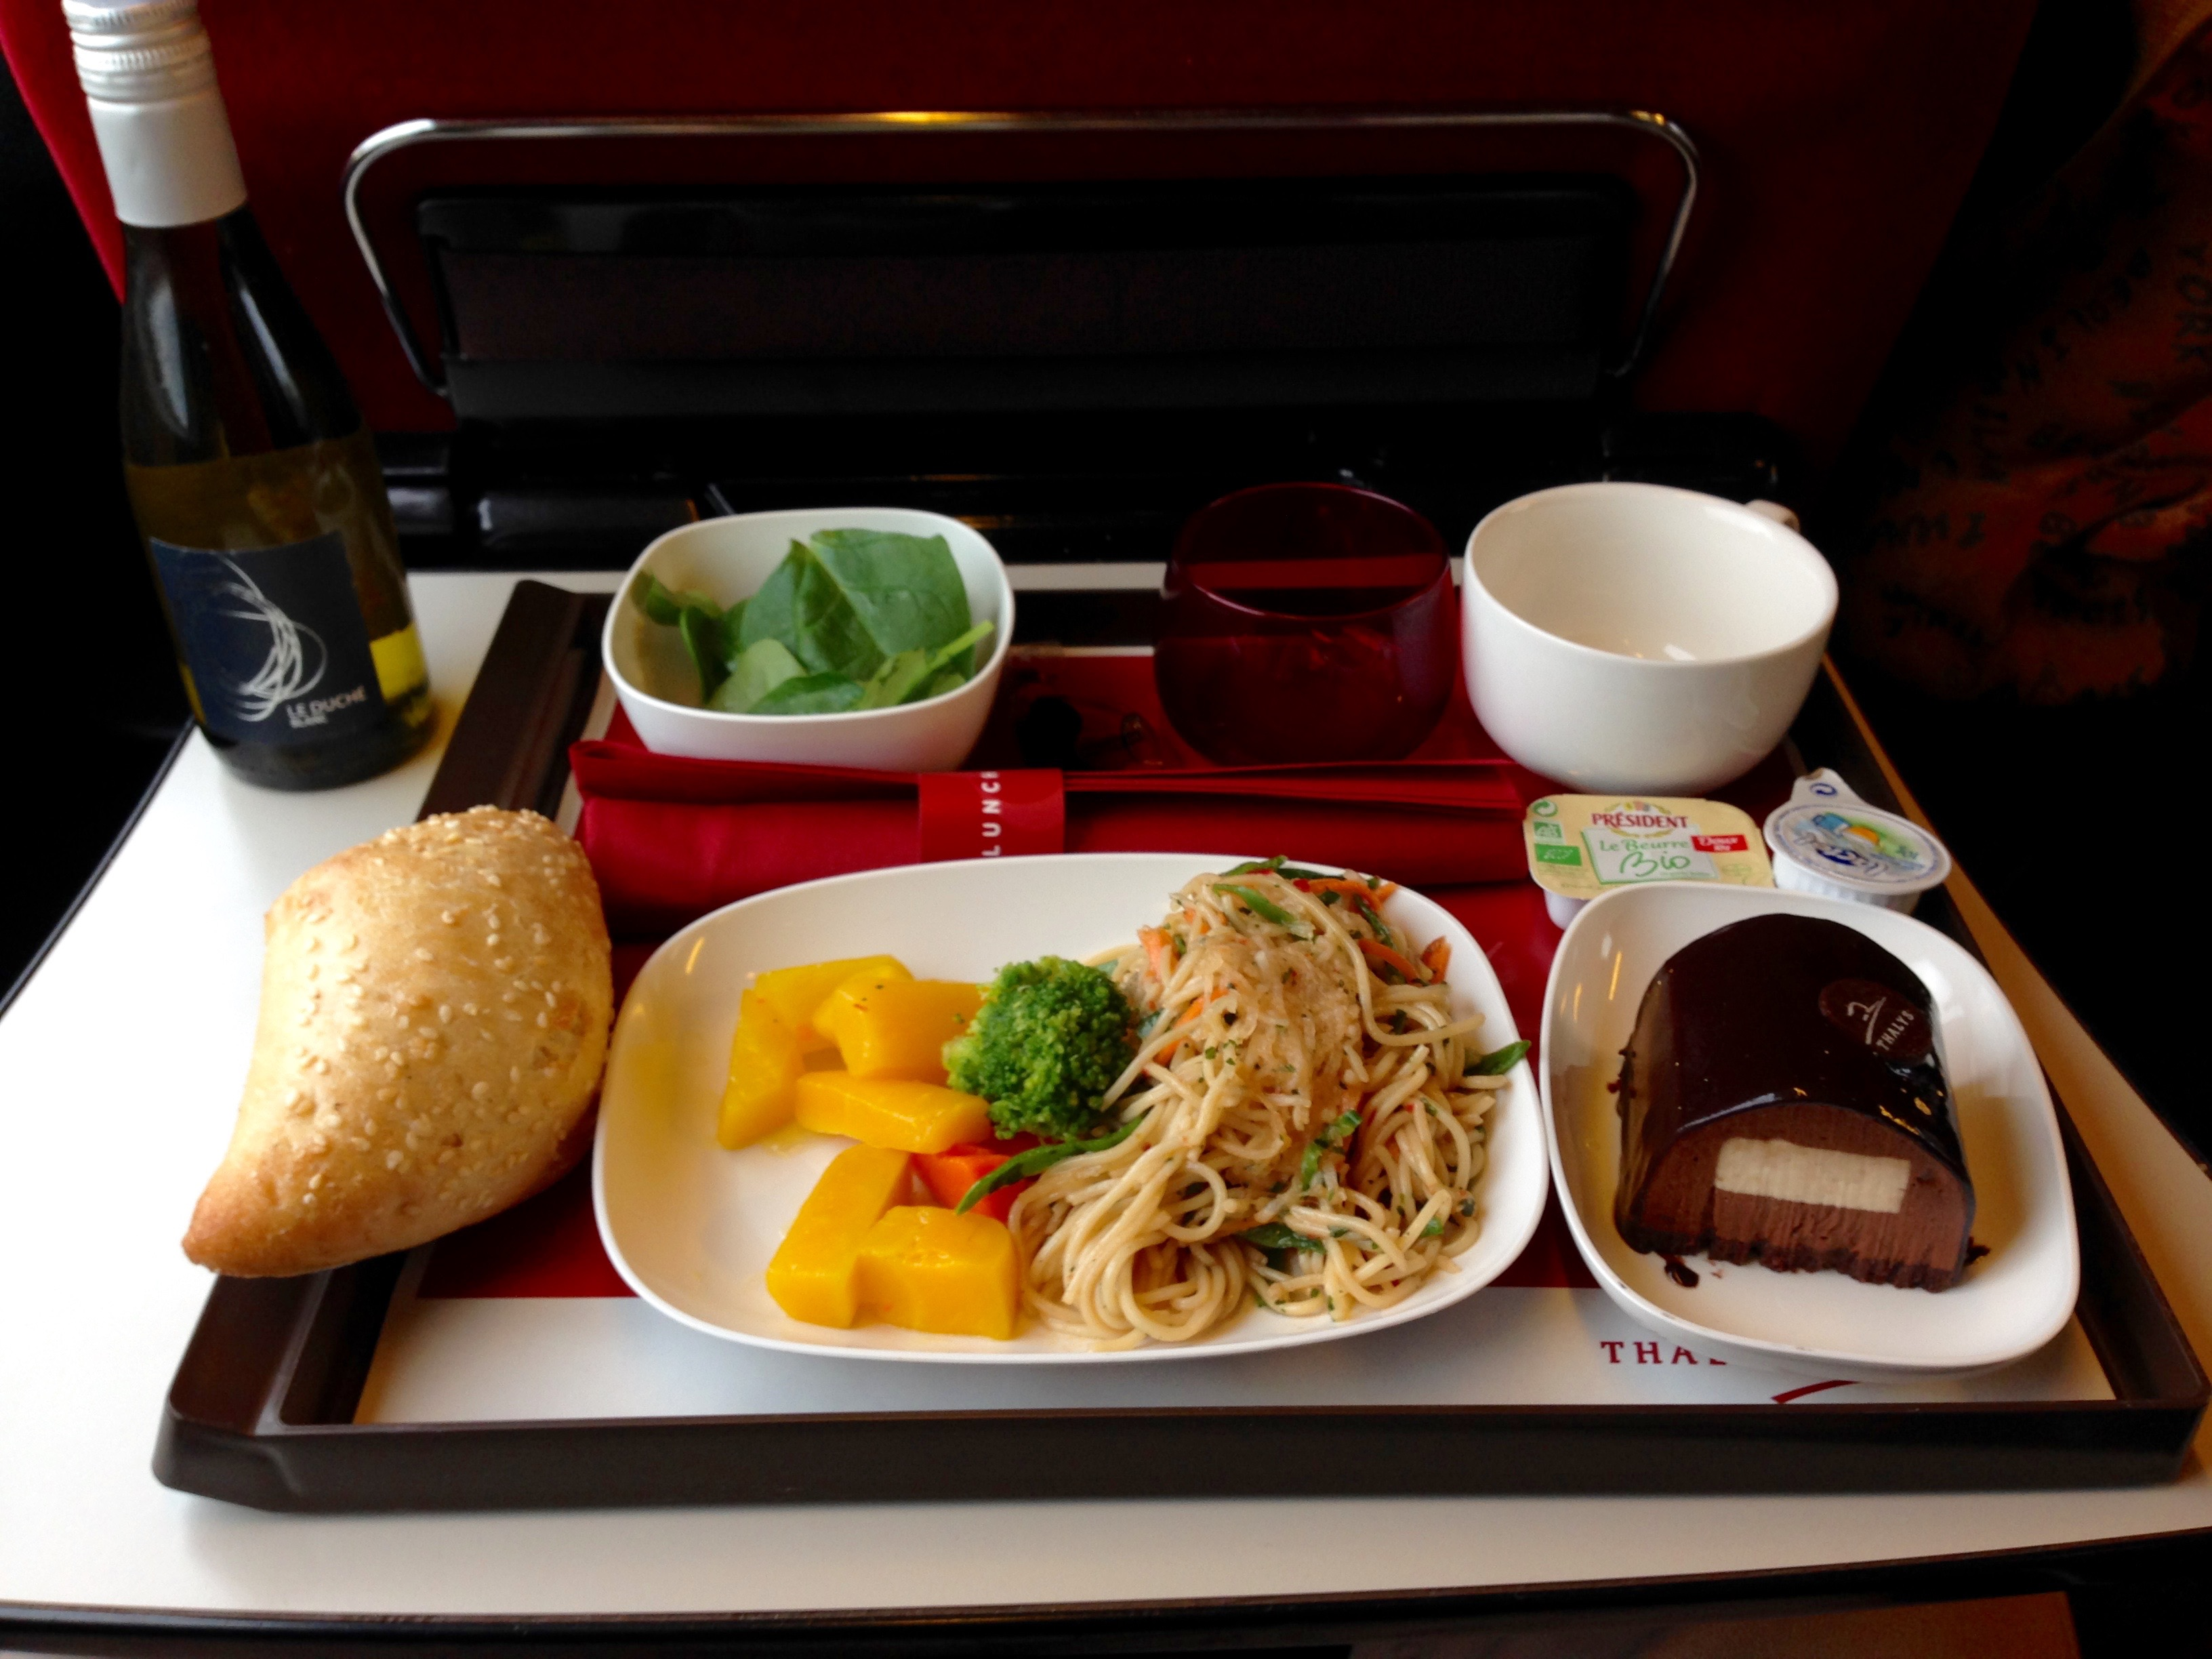 Thalys Comfort 1 First Class Lunch Meal